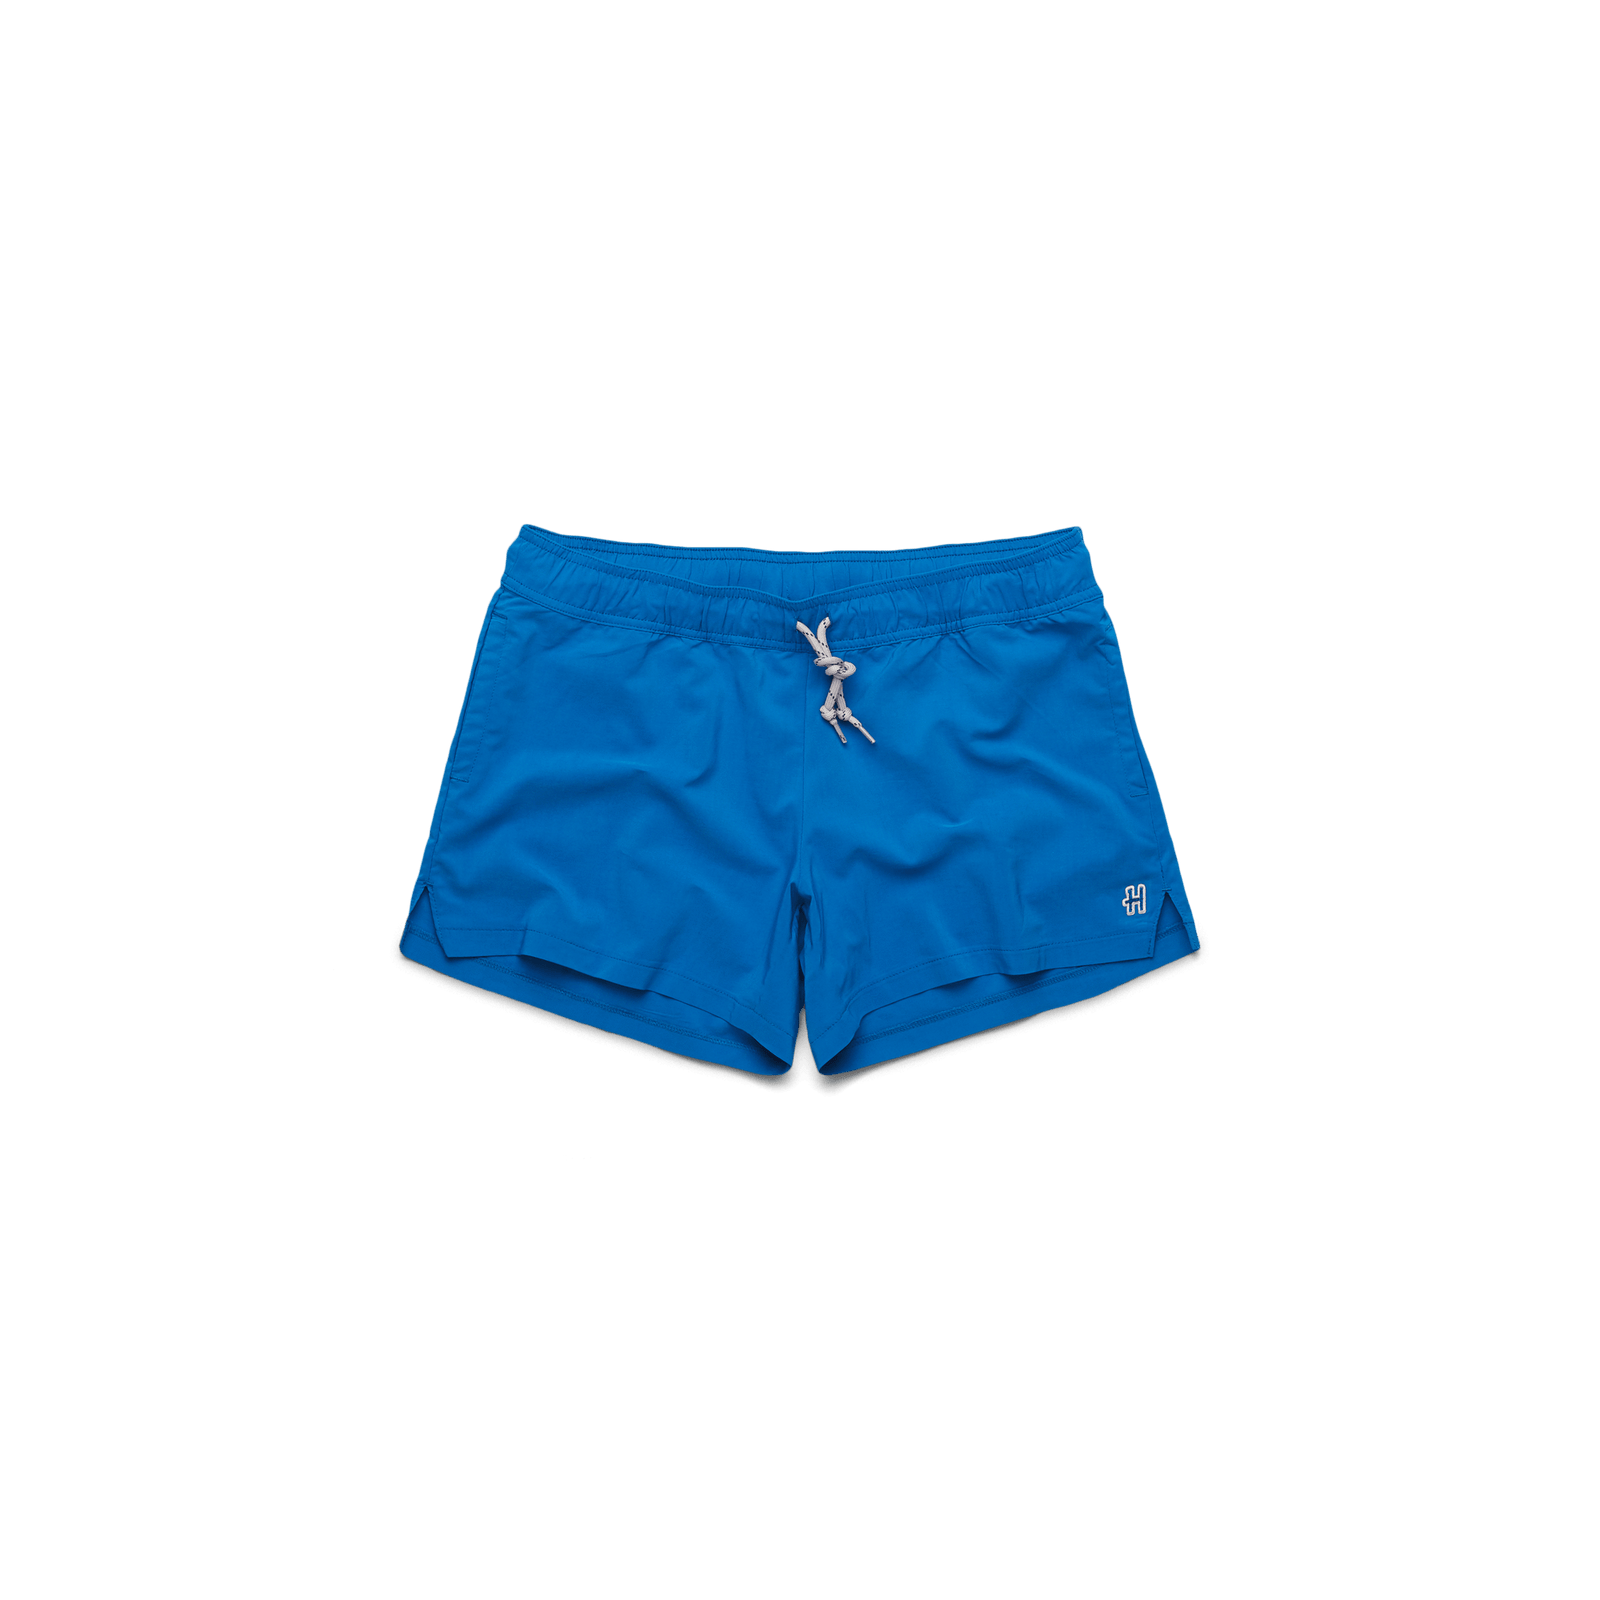 Women's Outdoor Stretch Camp Shorts